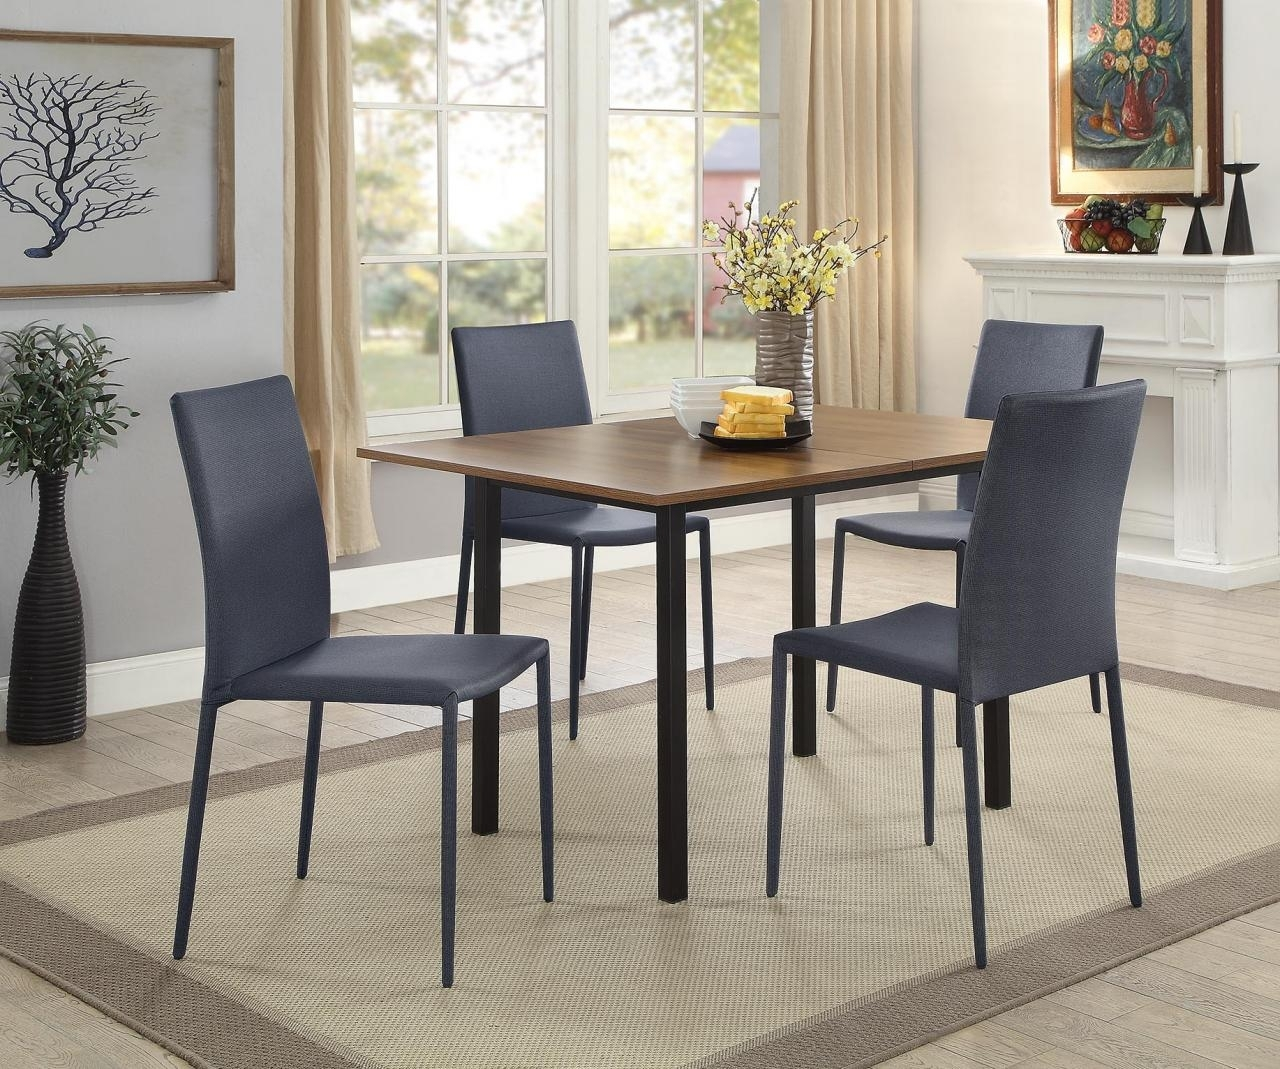 Table And Chair Sets Kitchen Appliances, Furniture, And Mattress In Regarding 2018 Market 7 Piece Dining Sets With Side Chairs (View 9 of 20)